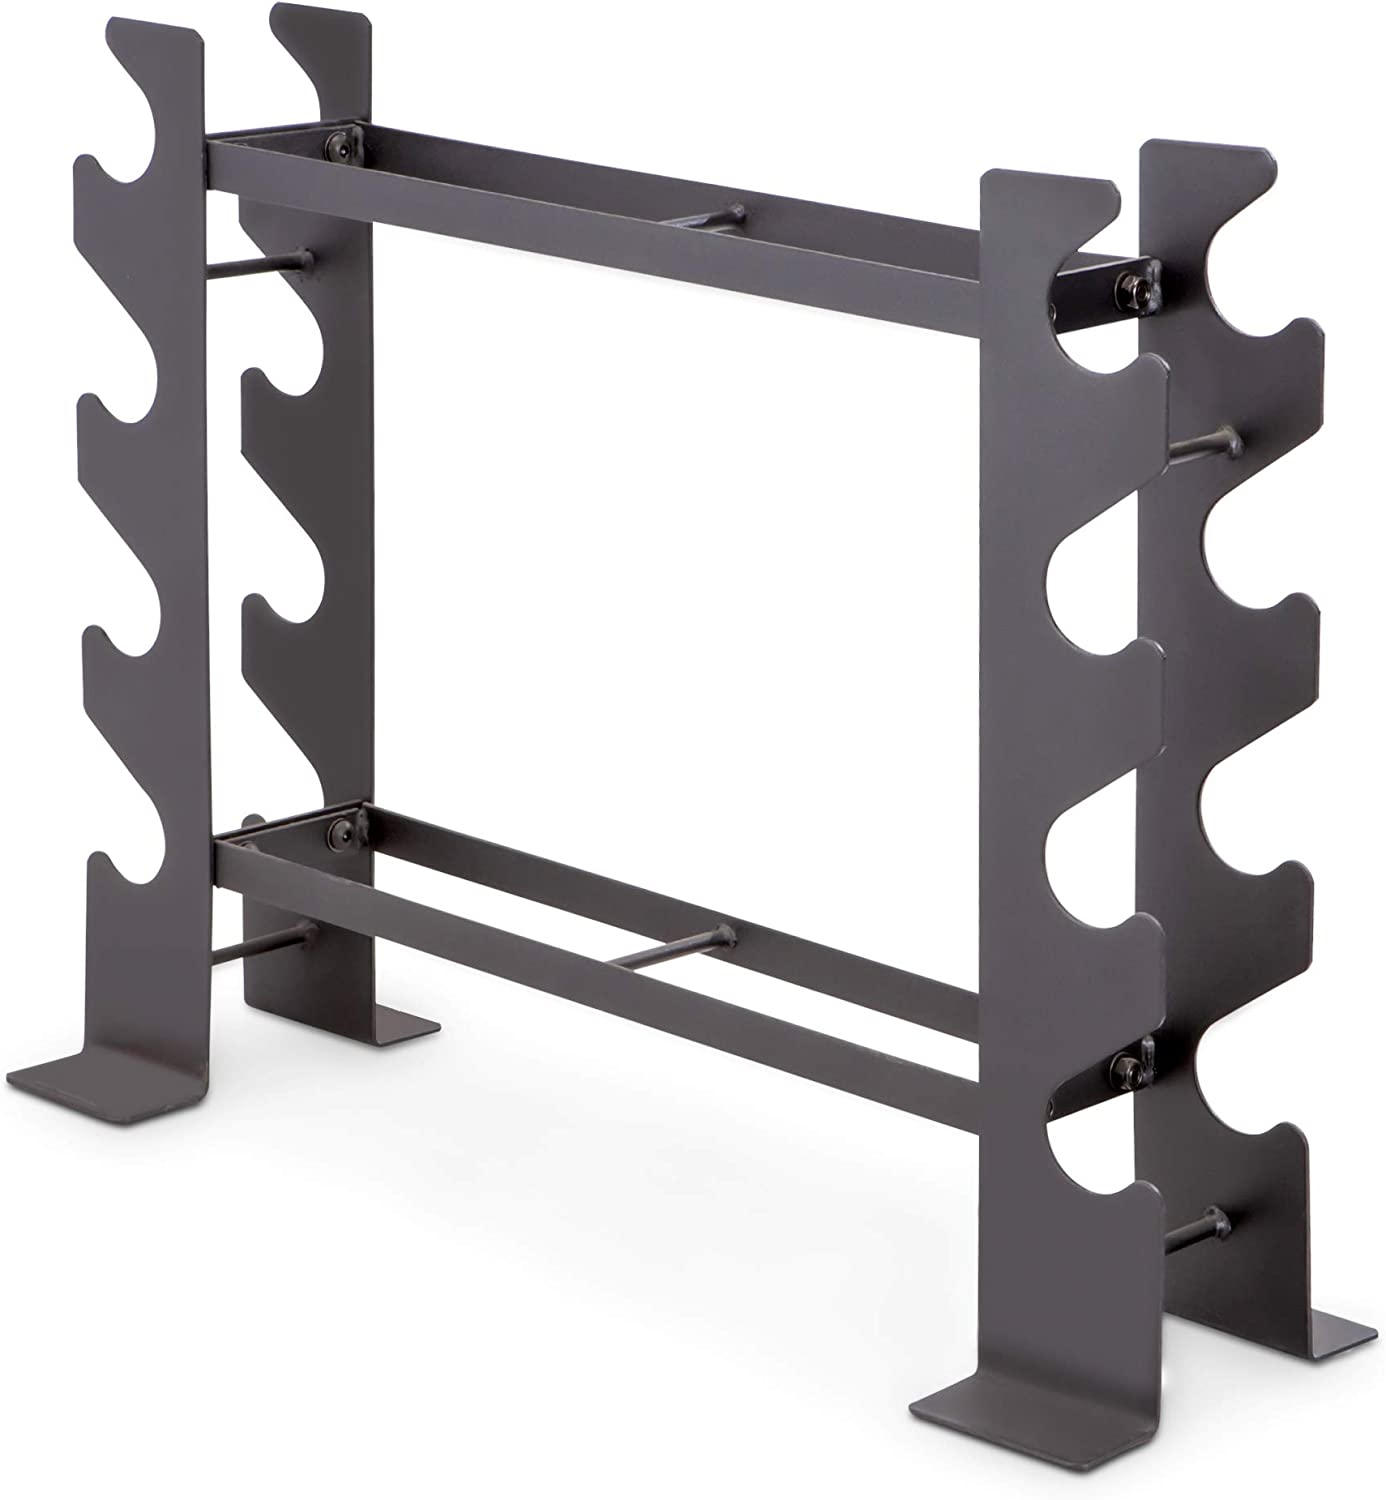 Marcy Compact Dumbbell Rack Free Weight Stand for Home Gym DBR-56 : Dumbells Rack : Sports & Outdoors